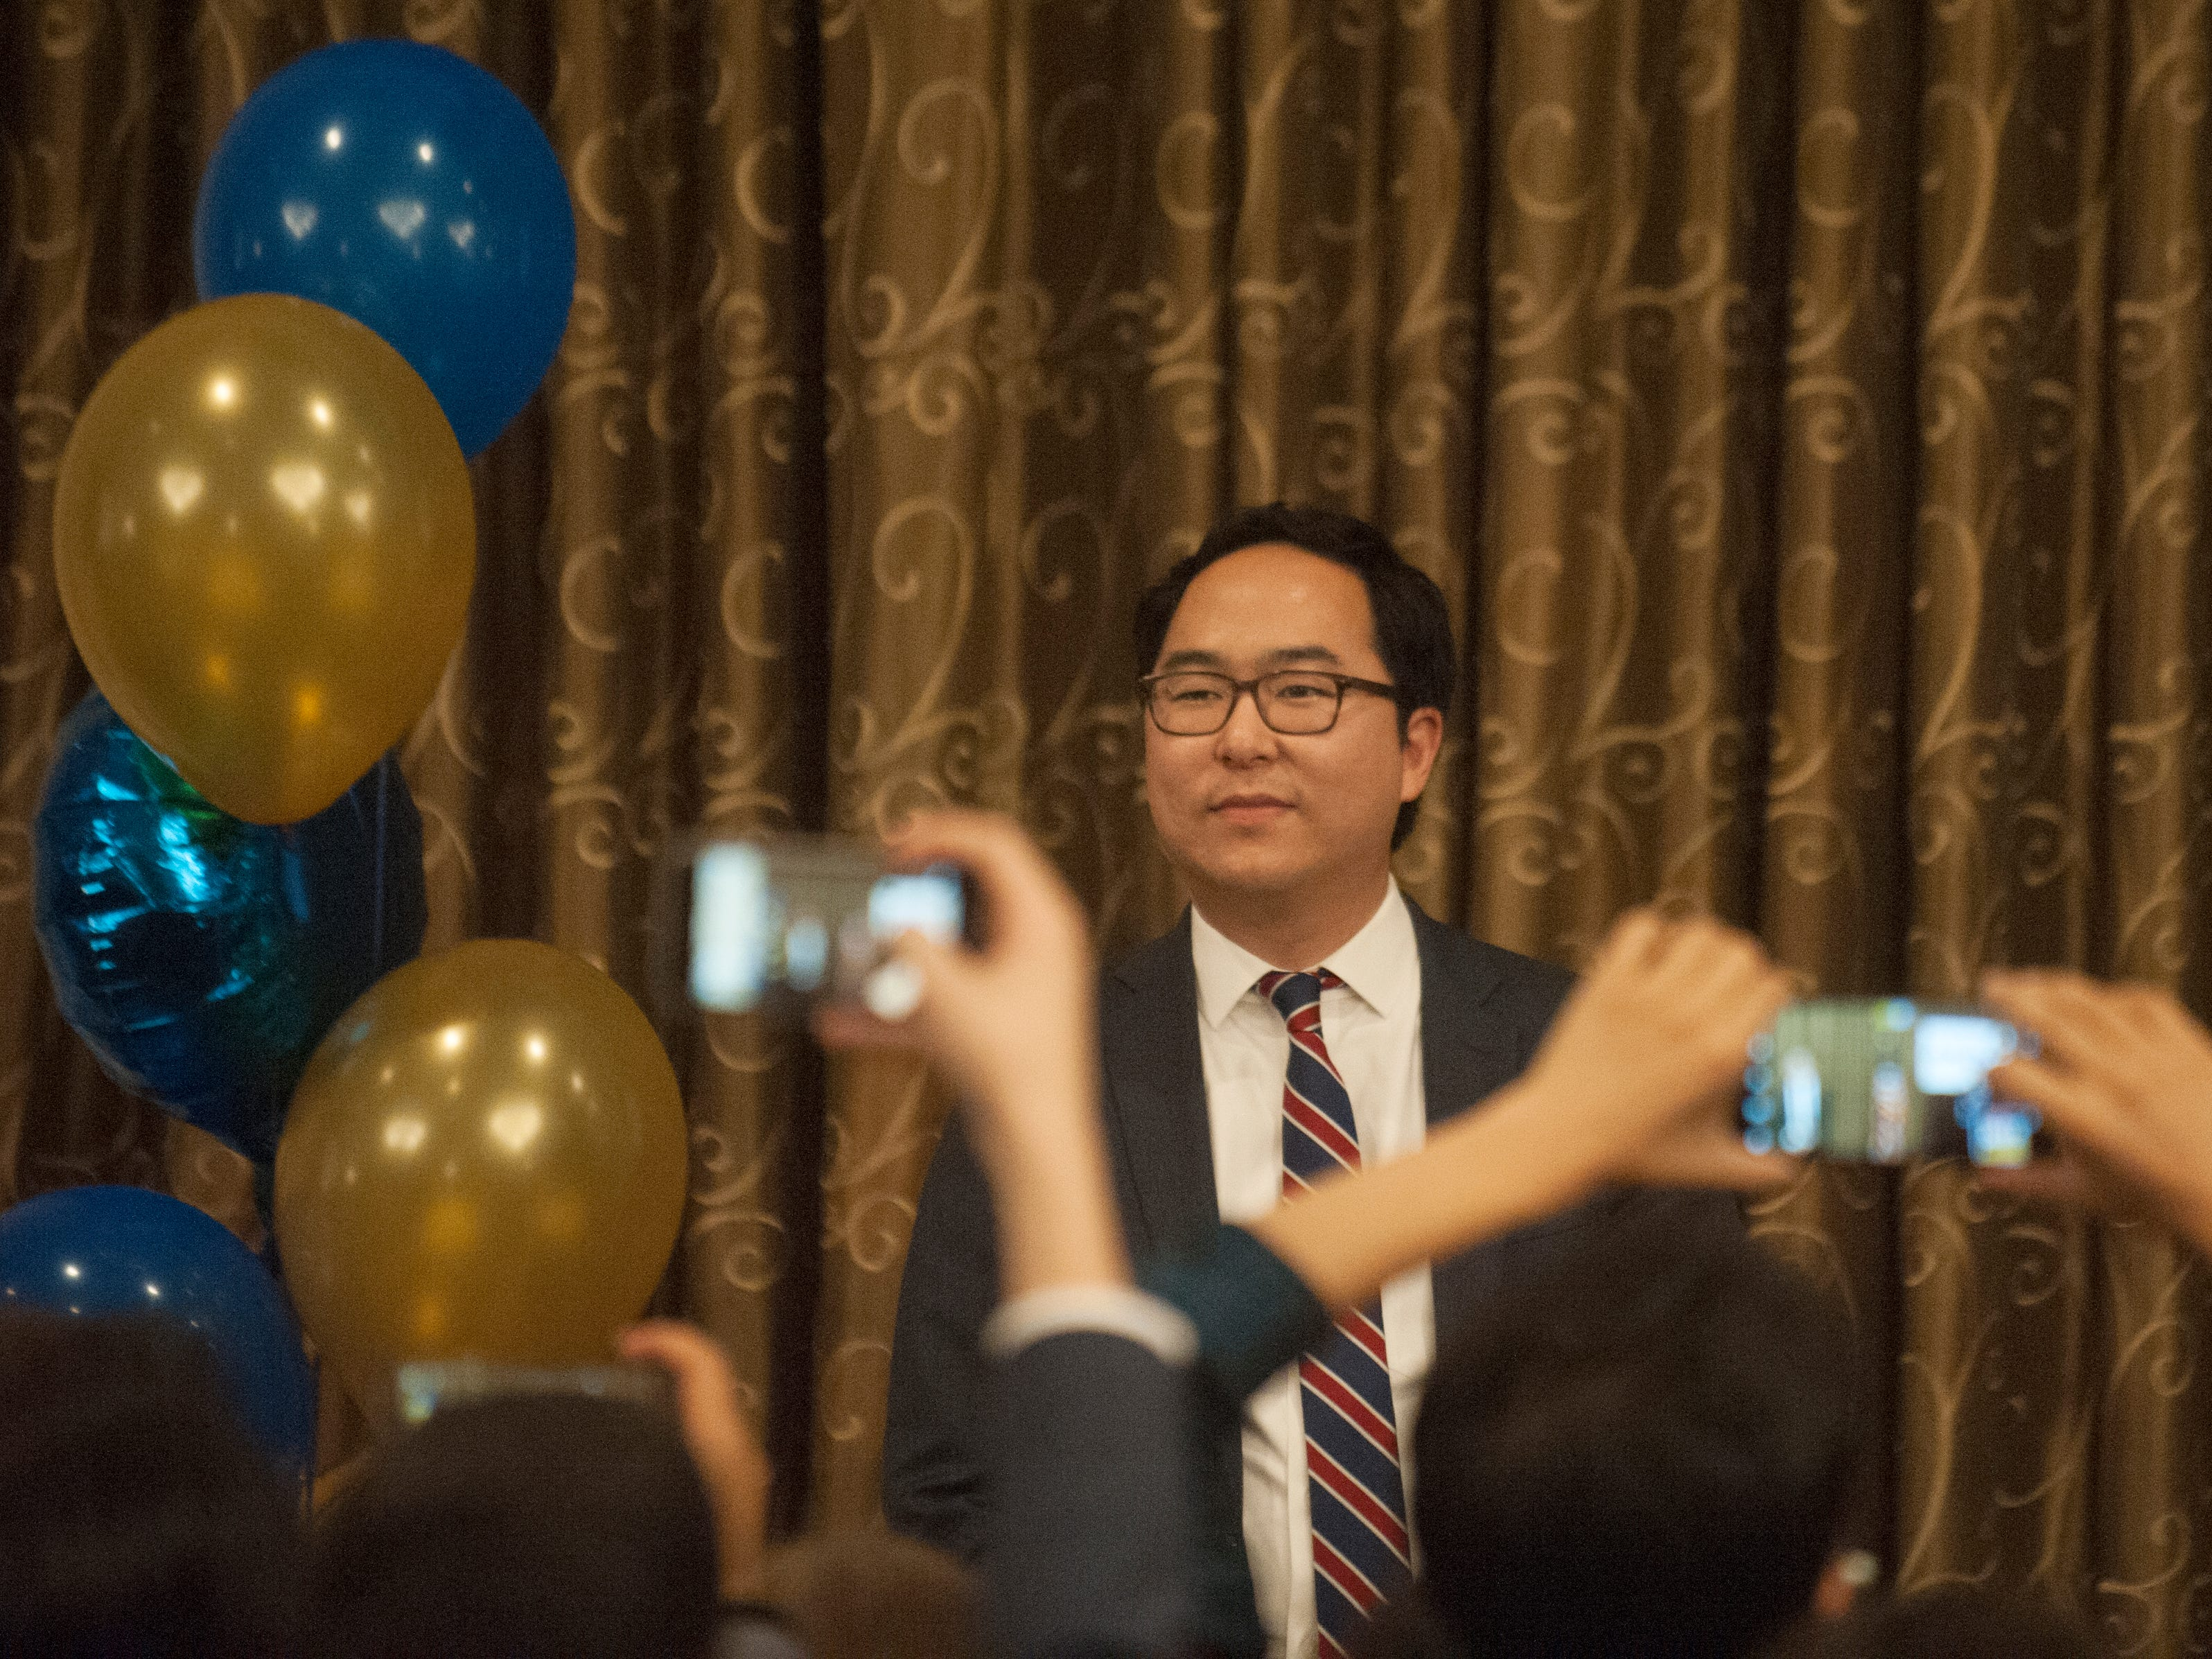 Democratic 3rd Congressional District candidate Andy Kim prepares to speak to supporters at his election night headquarters,  the Westin Mount Laurel in Mount Laurel, NJ, on Tuesday, November 6, 2018.   A winner of the race was not named on Tuesday night.